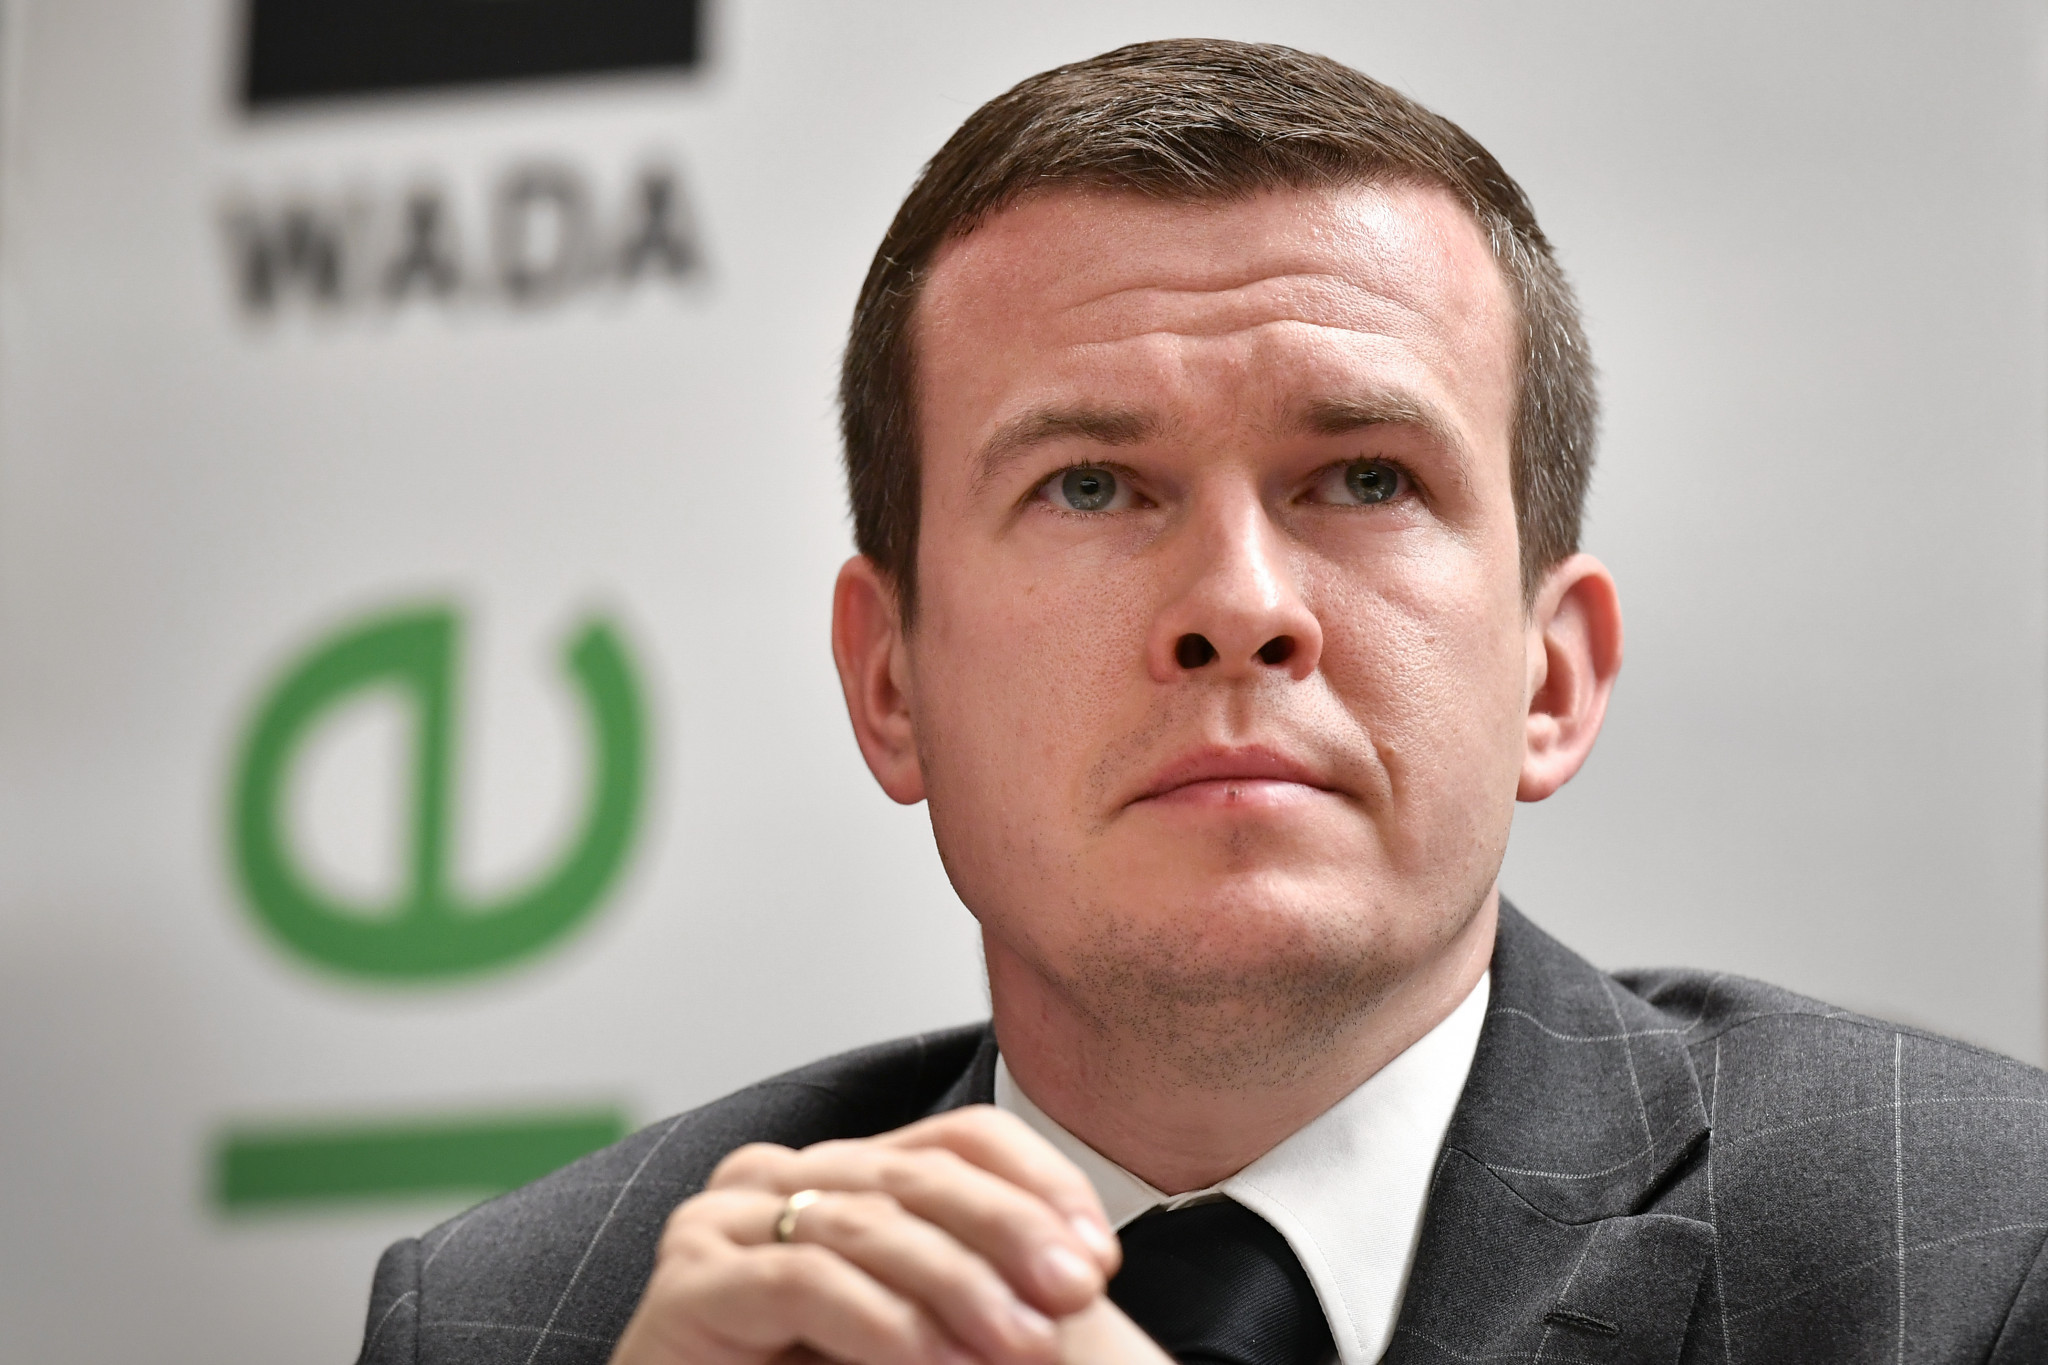 WADA President Witold Bańka emphasised